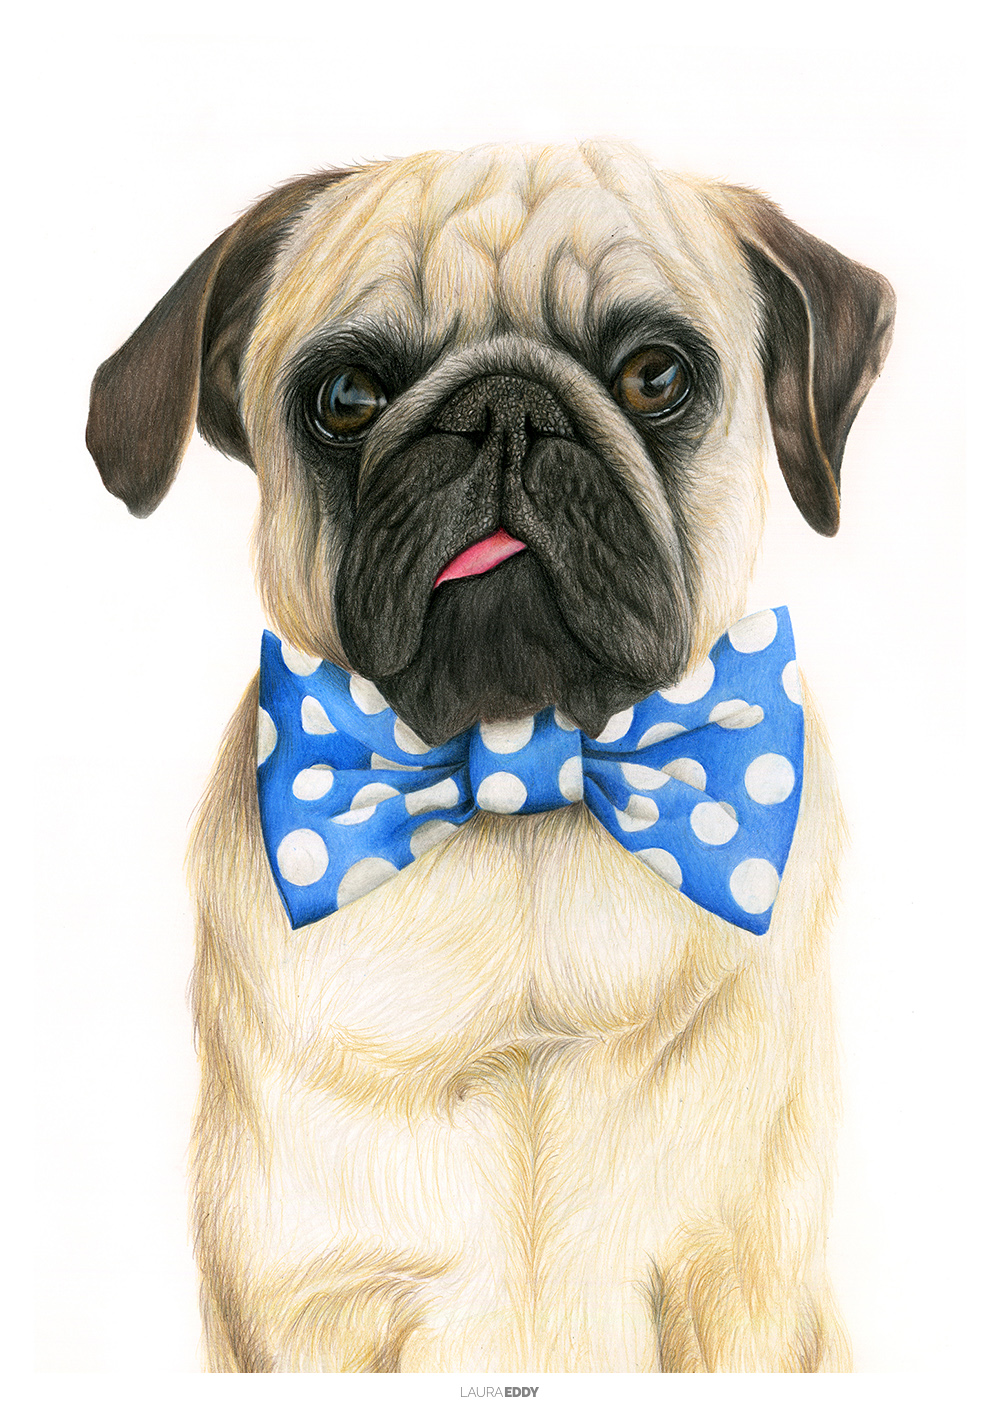 laura-eddy-drawing-bowtie-puglife-branded.jpg